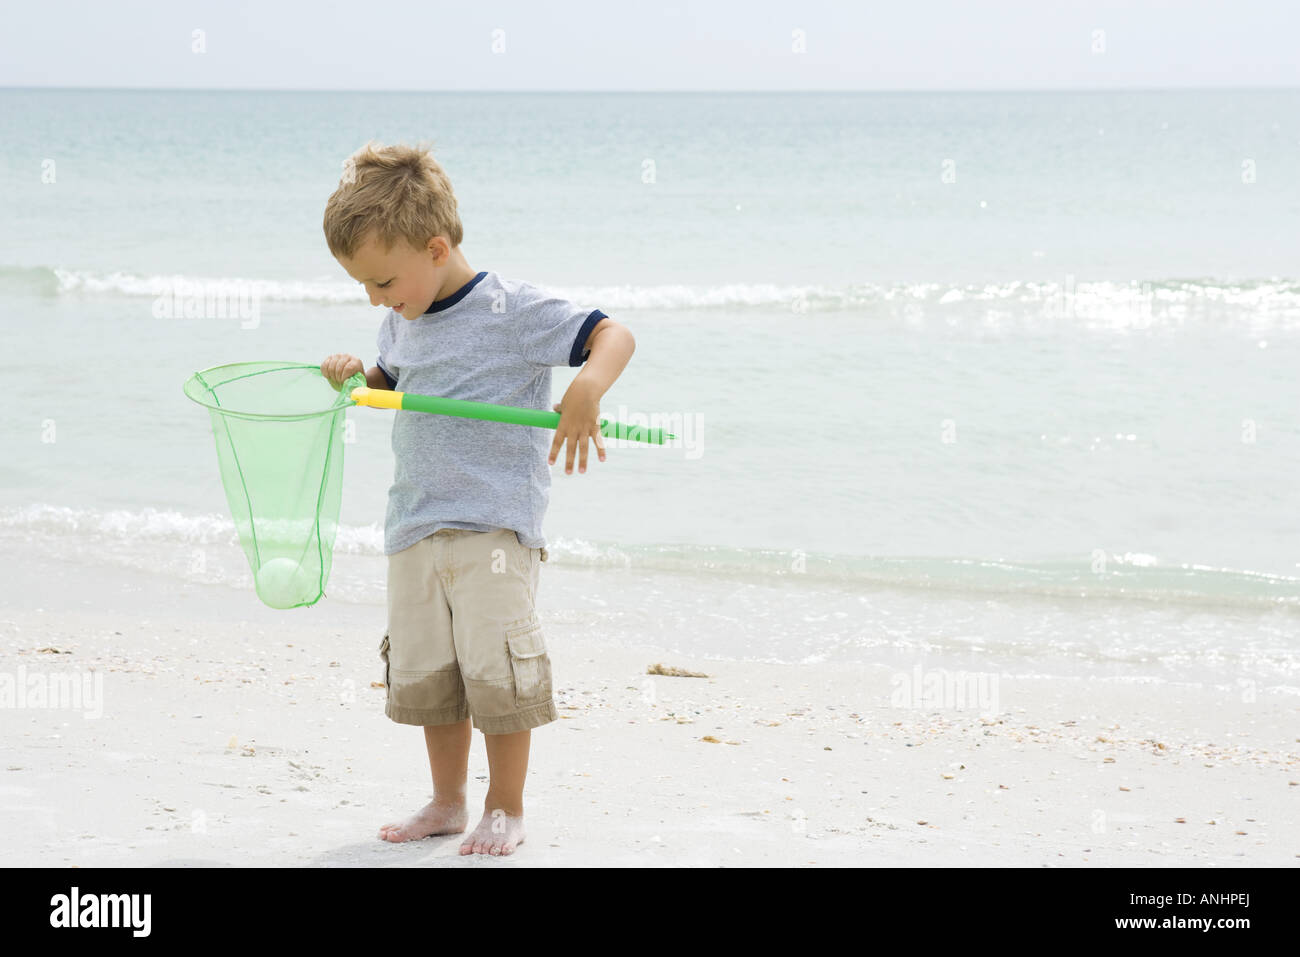 Young boy standing at the beach, holding ball in net, looking down - Stock Image